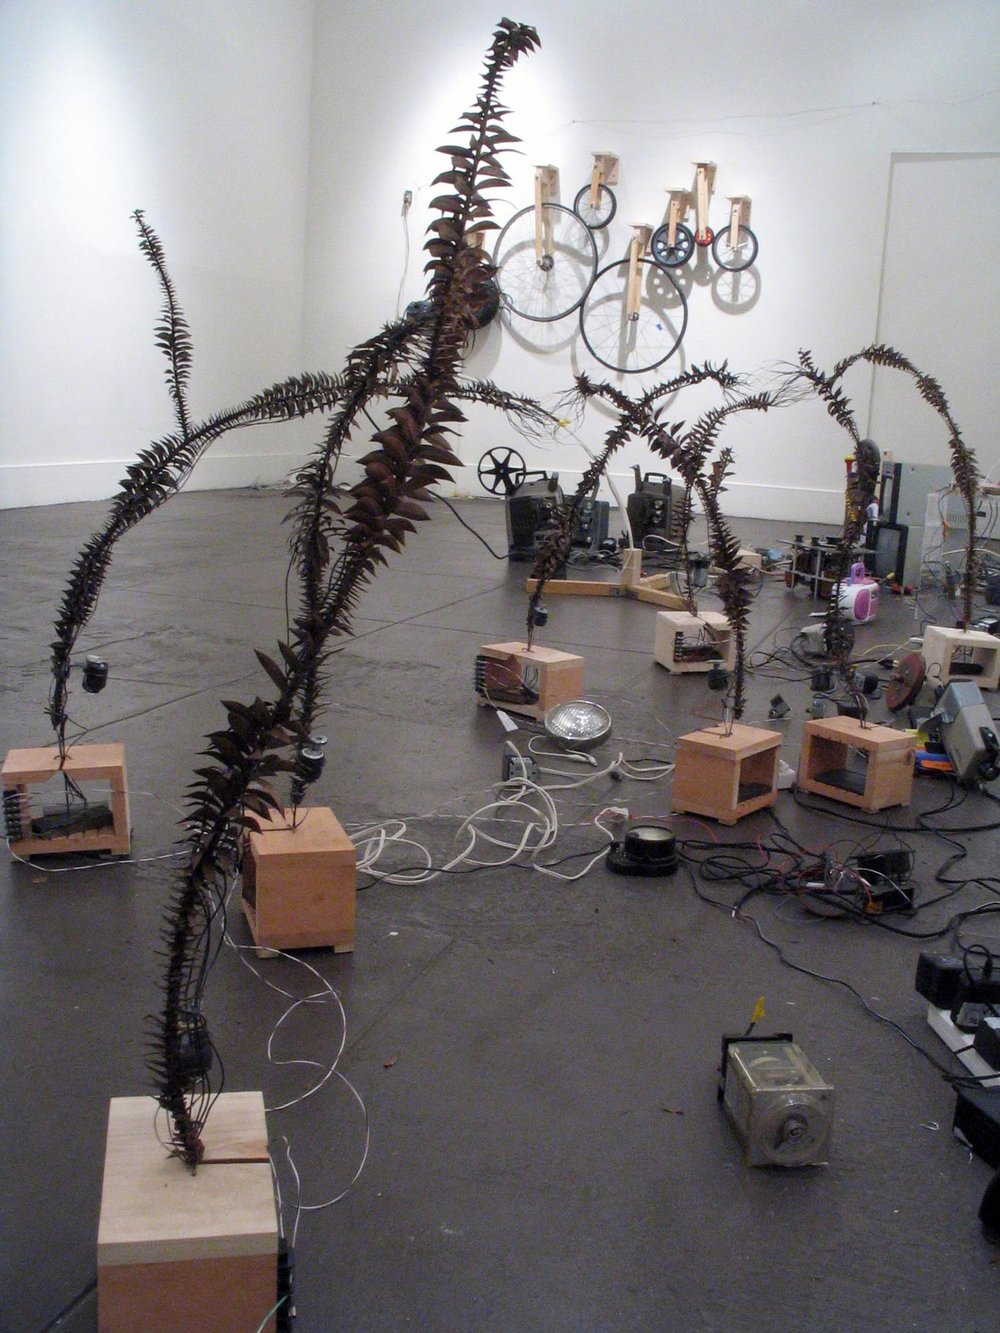 View of part of the installation on right side of room. Pairs of stiff plant branches meet each other with bristling bare copper wires. As the wires touch, they complete the electrical circuit that triggers vibrating motors attached to each branch.